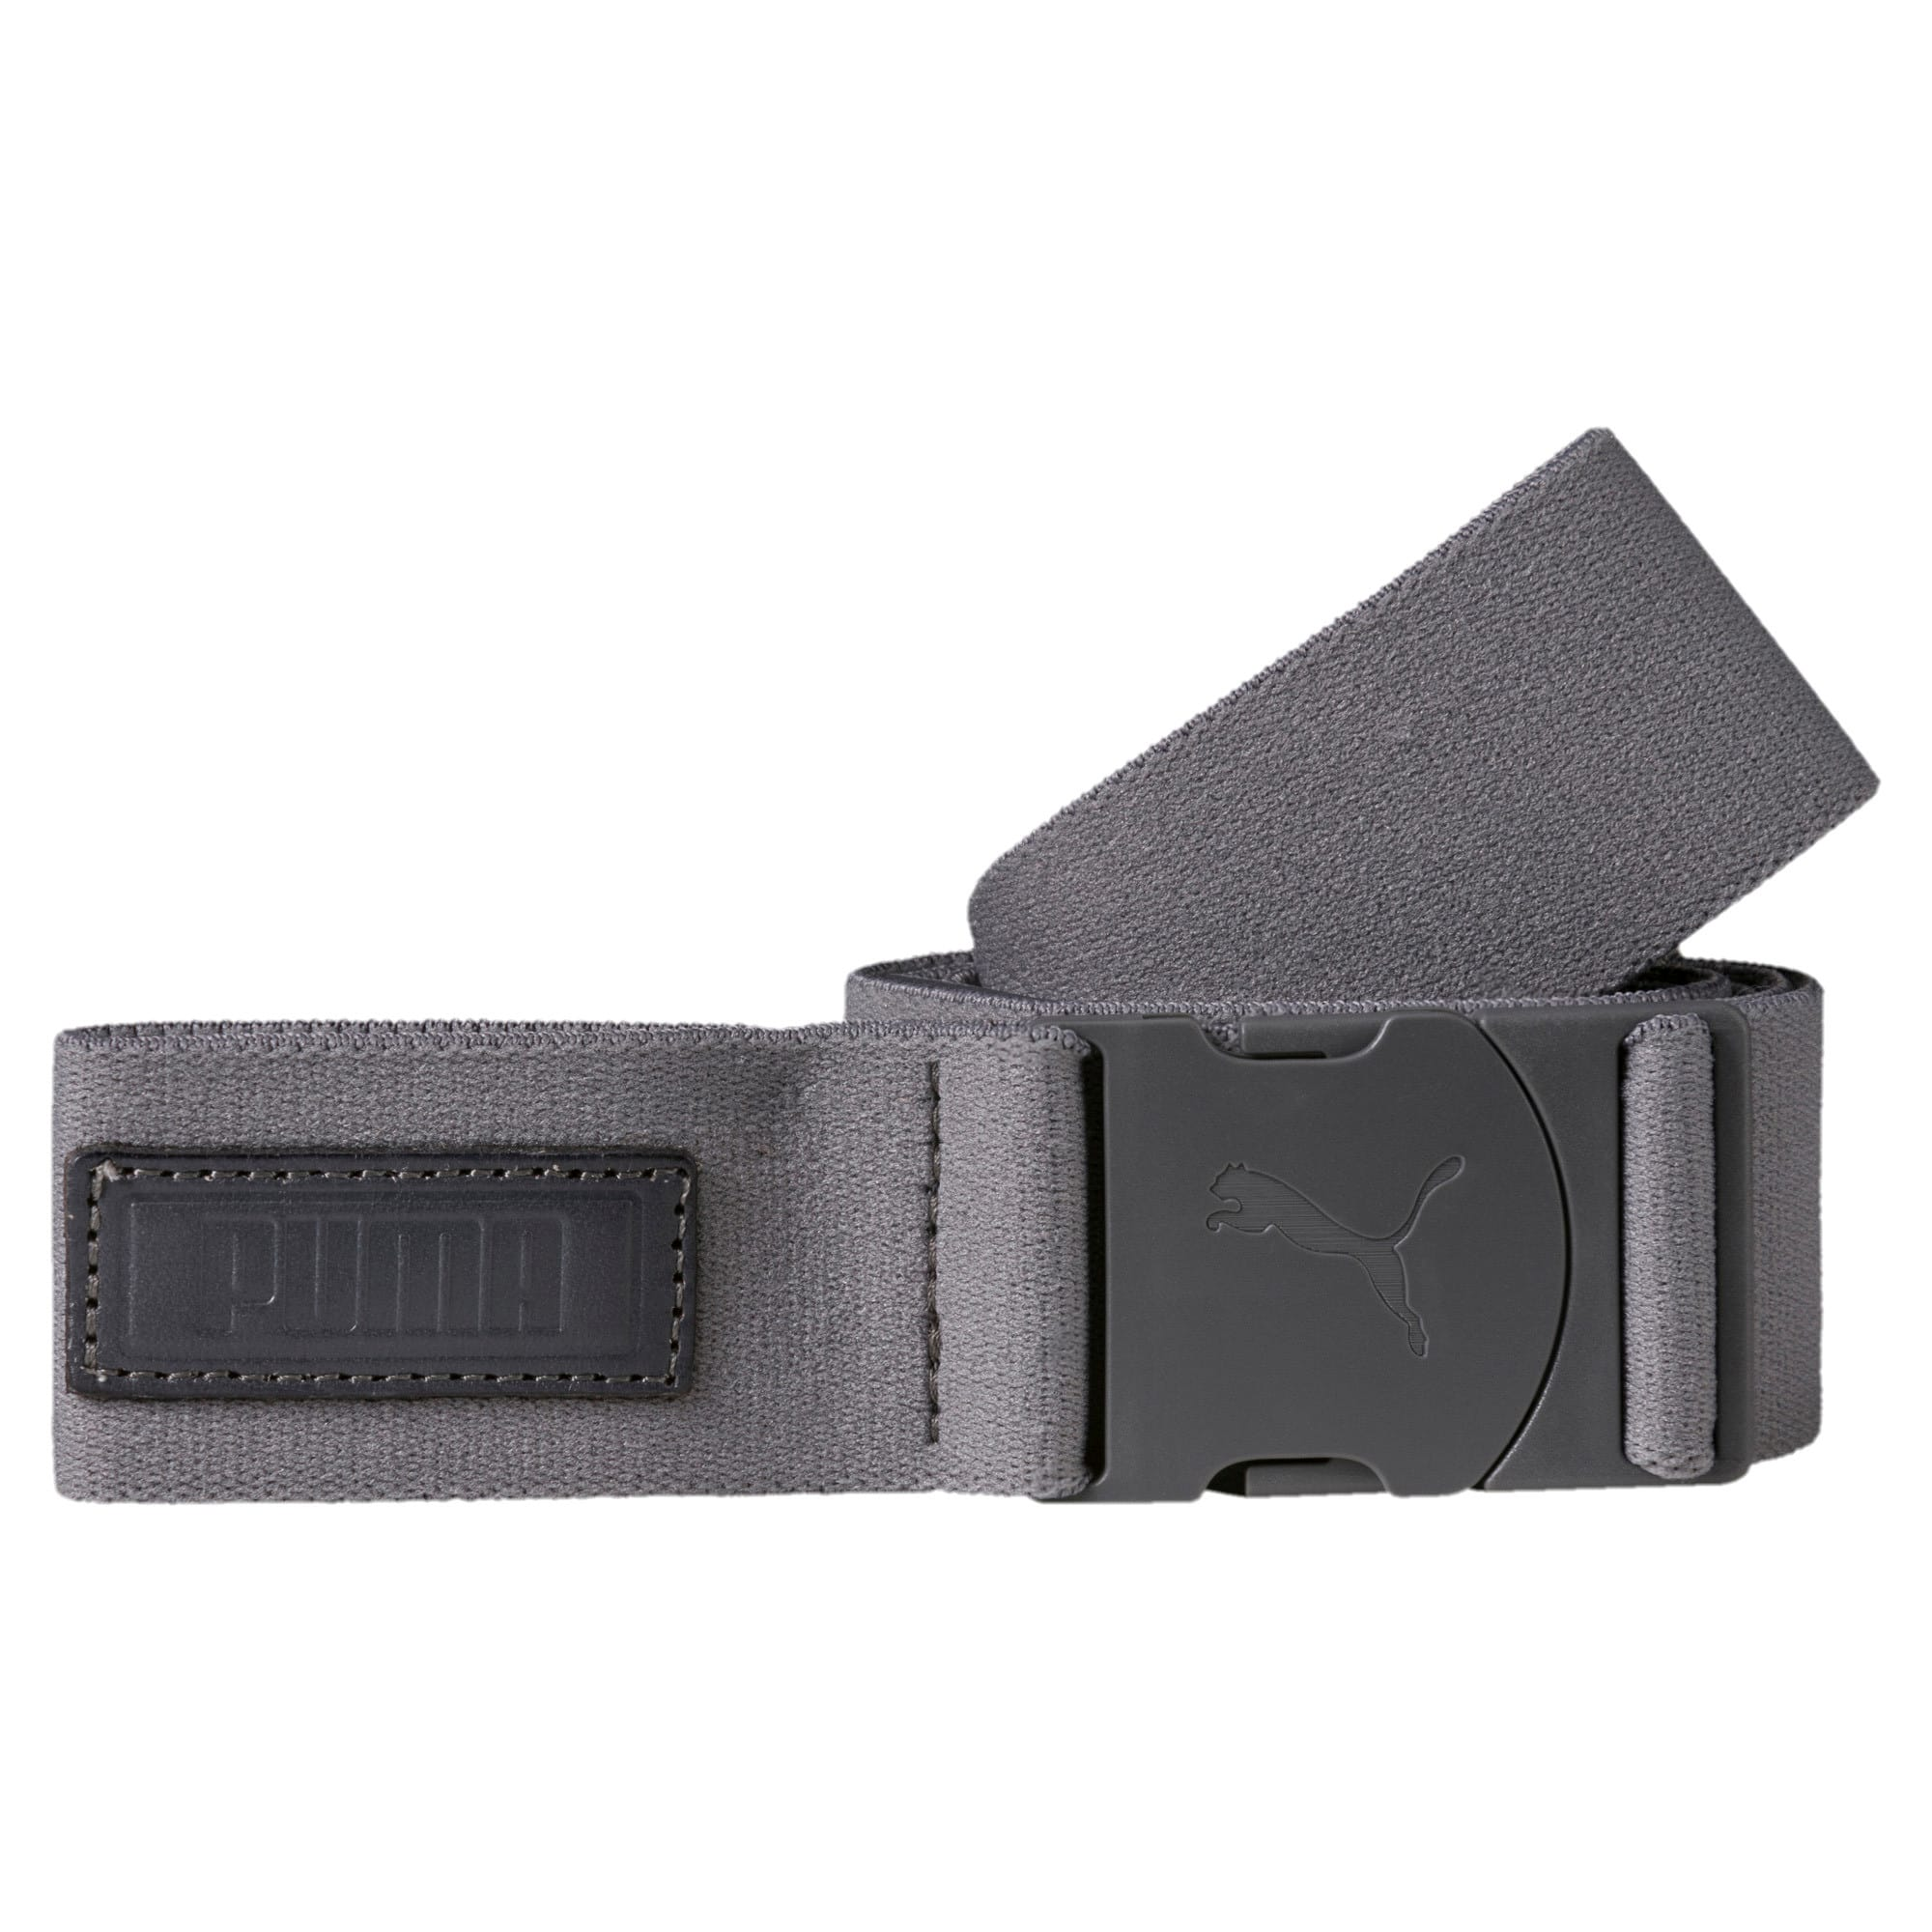 Thumbnail 1 of Ultralite Stretch Belt, QUIET SHADE, medium